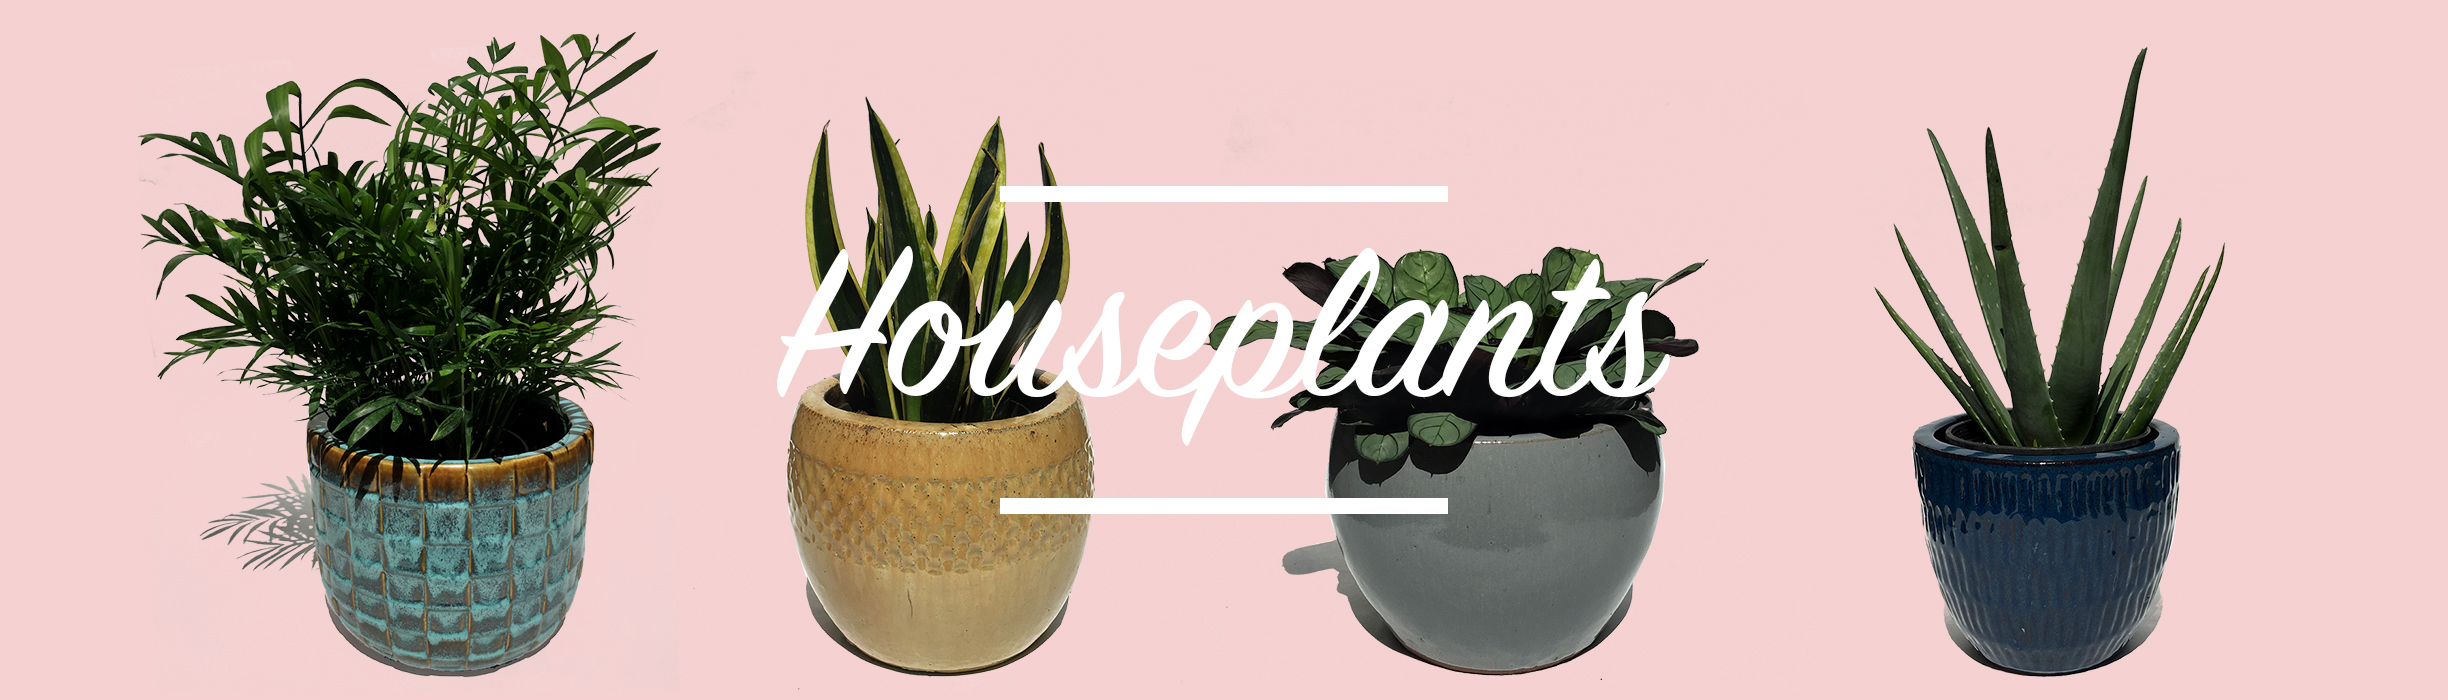 Give Yourself Some Apartment Therapy With Our Wide Range Of Unique Indoor Tropicals Shipped Up From Trusted Growers In Florida Small Succulents To